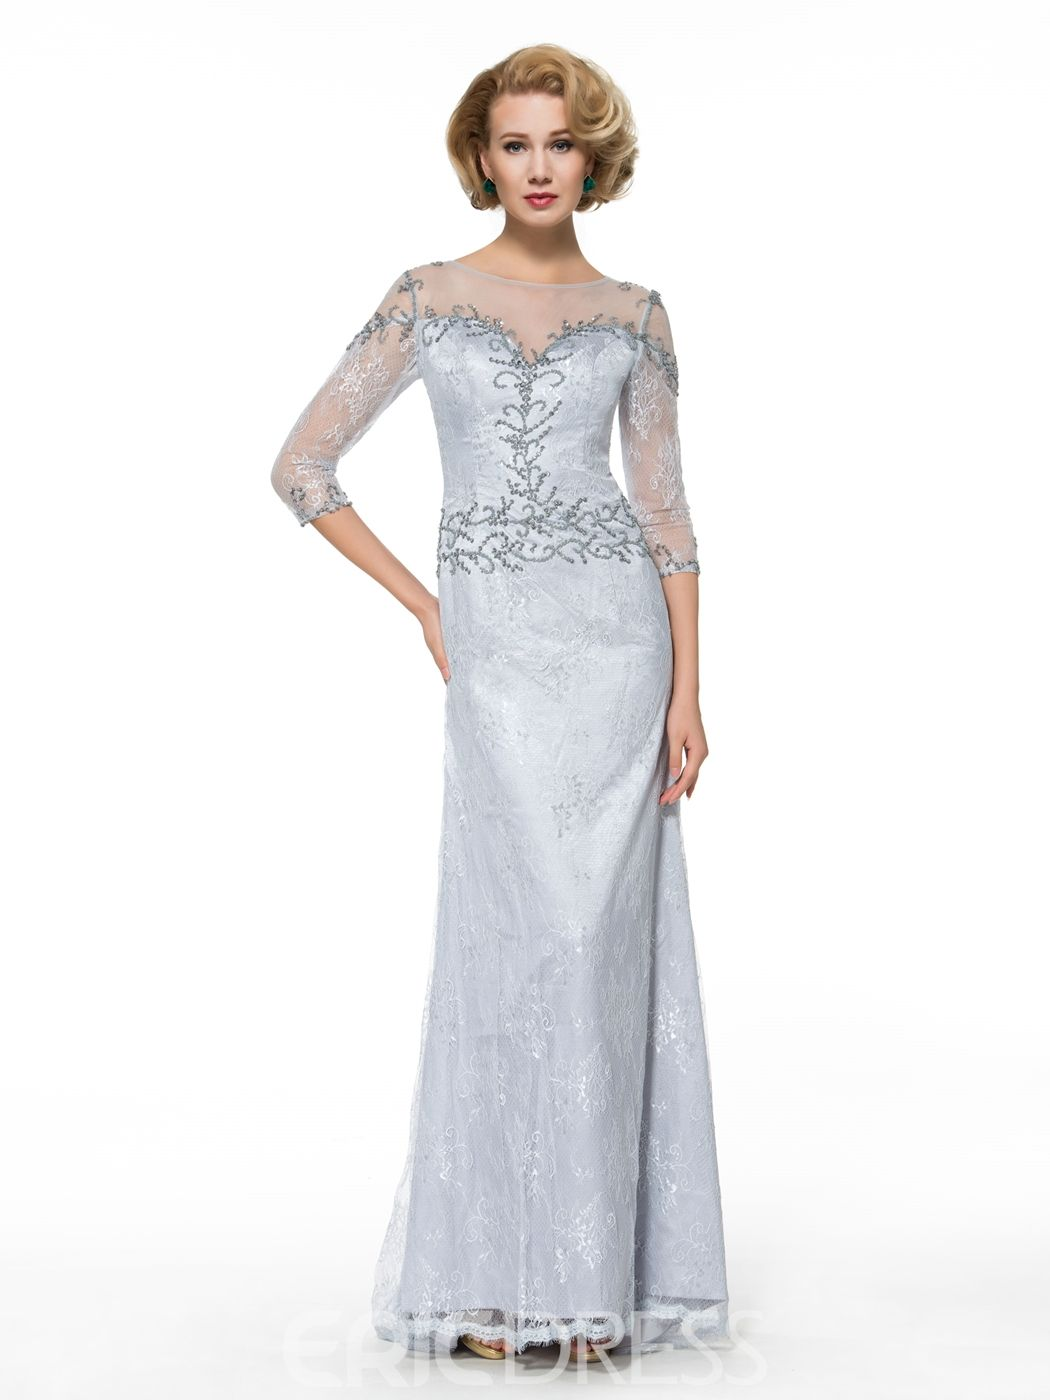 3/4 length lace wedding dress  Sheath Lace  Length Sleeves Long Mother of the Bride Dress